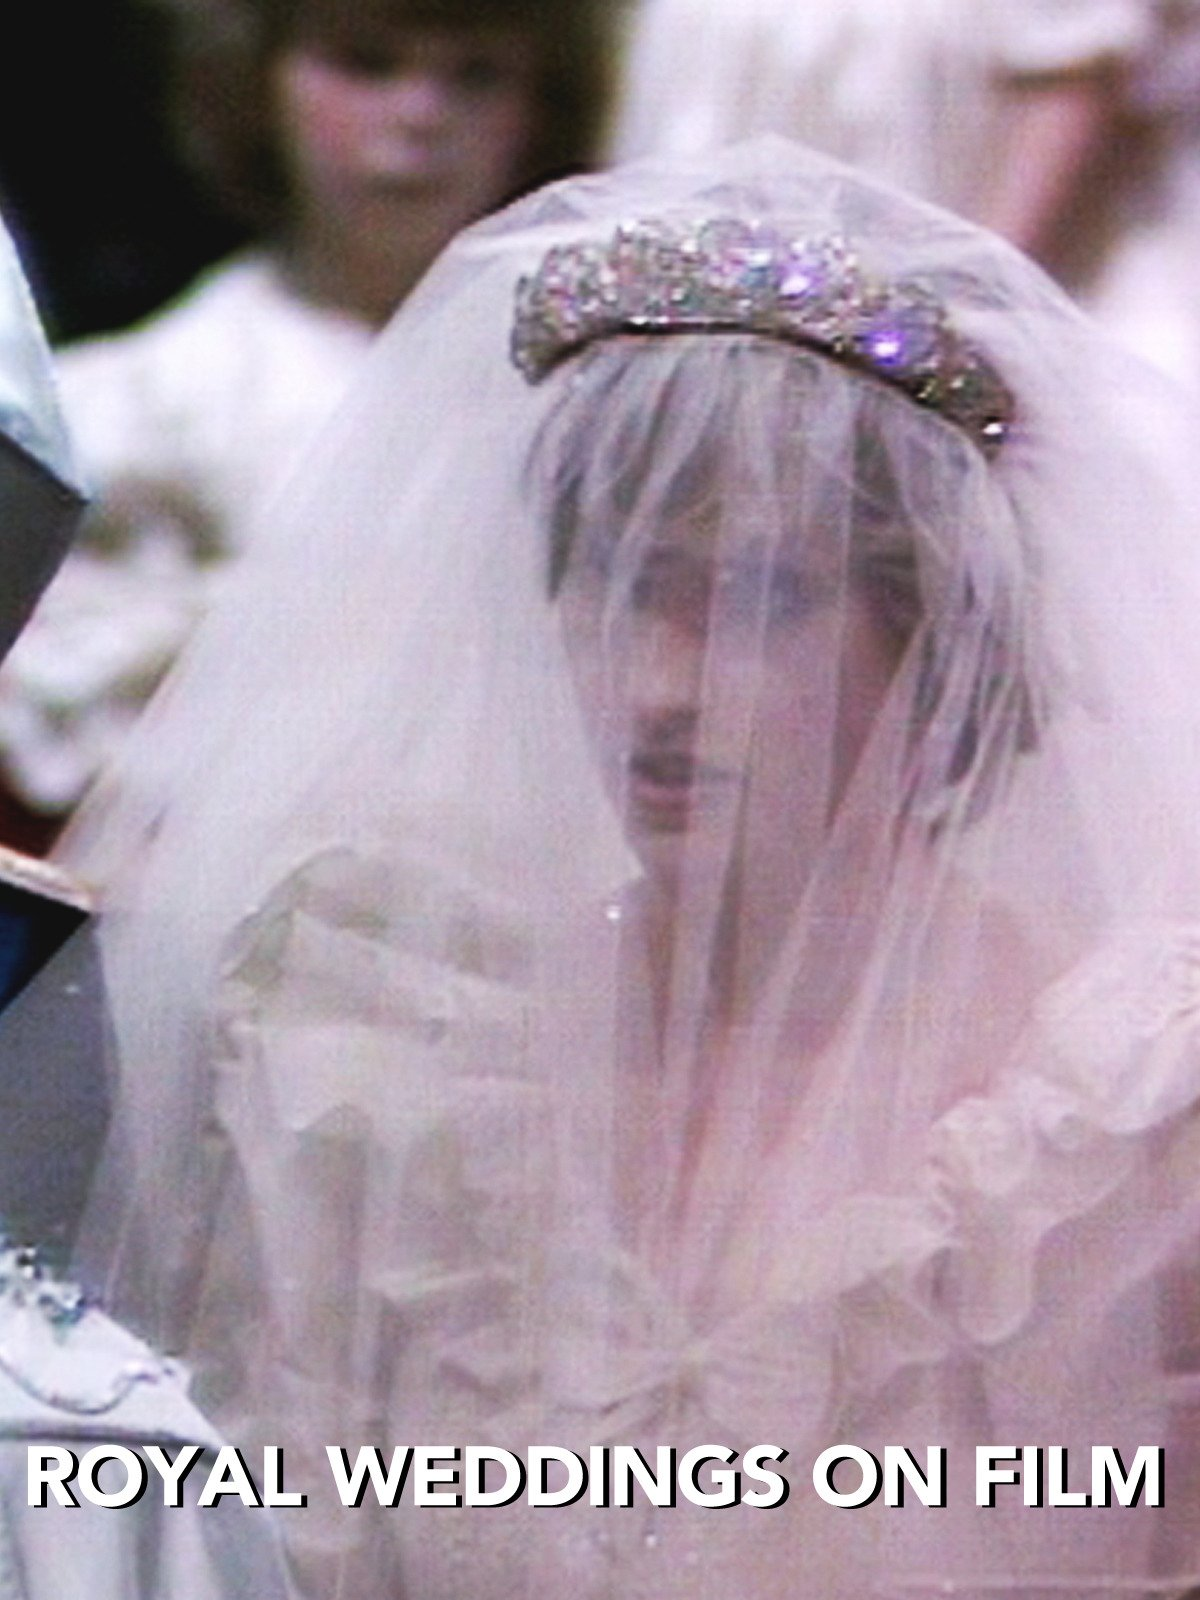 Royal Weddings on Film